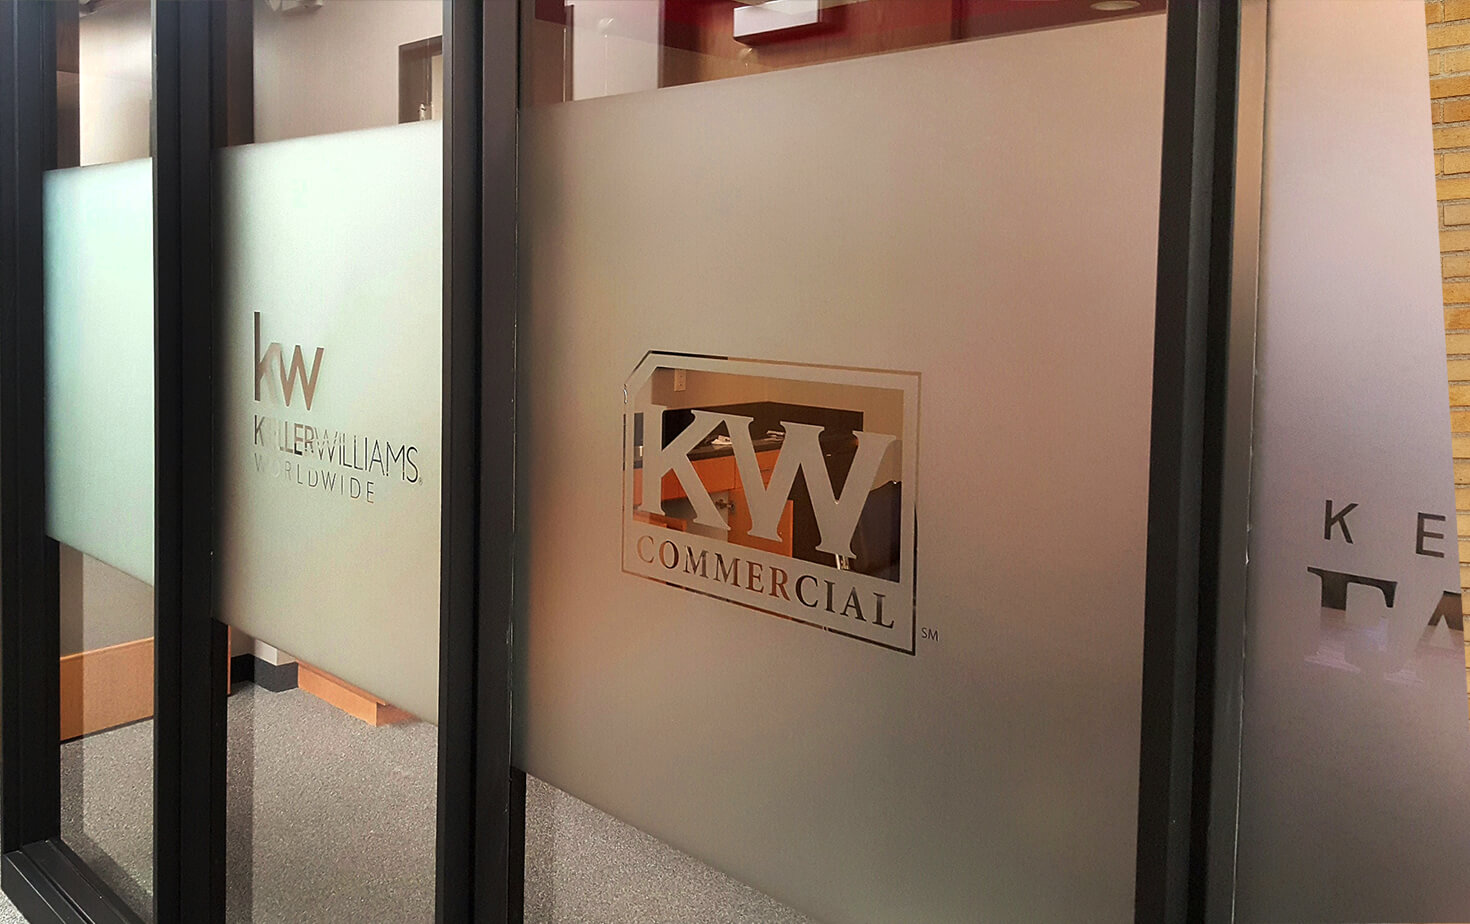 Keller Williams Interior etched glass window vinyl with logo